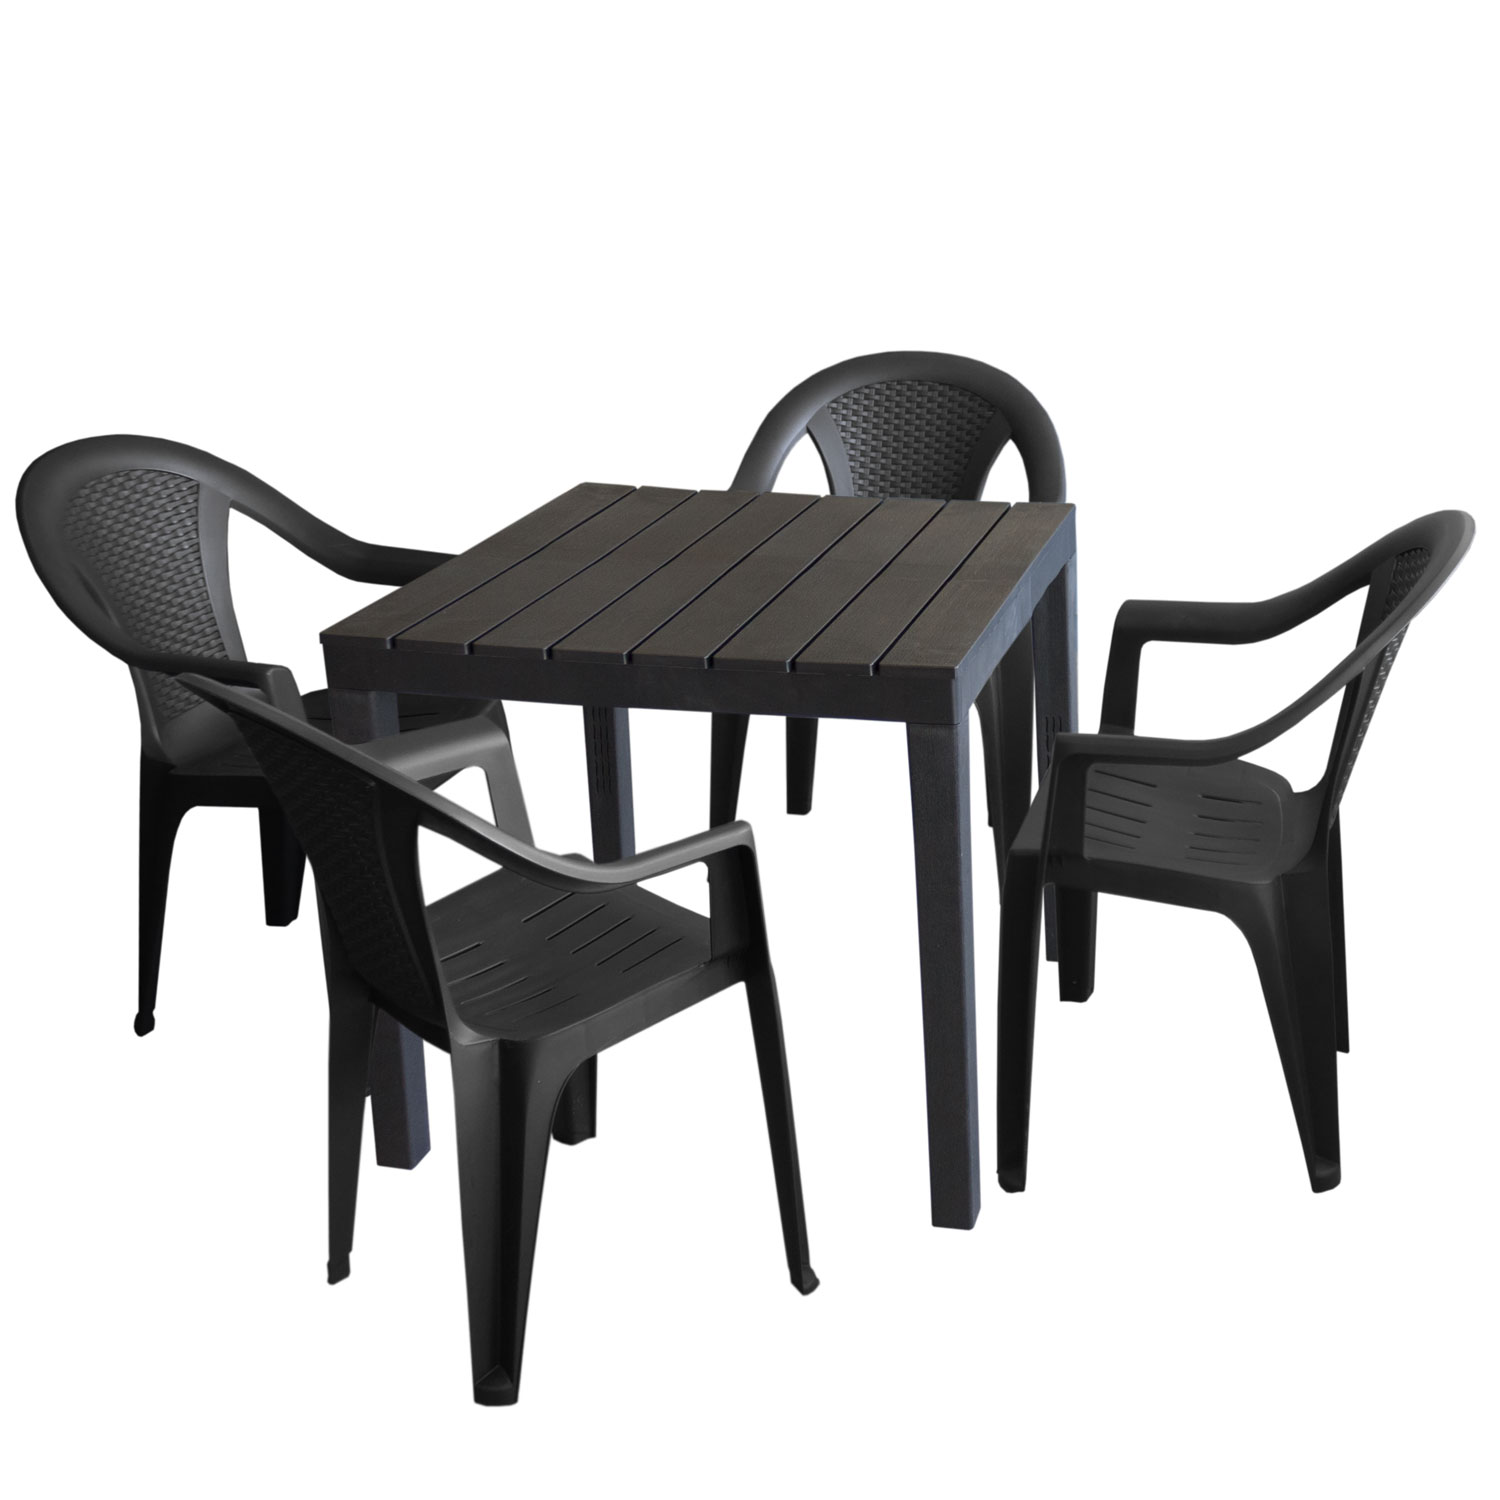 gartenm bel set kunststoff gartentisch 78x78cm 4x stapelstuhl ischia anthrazit garten bistro. Black Bedroom Furniture Sets. Home Design Ideas